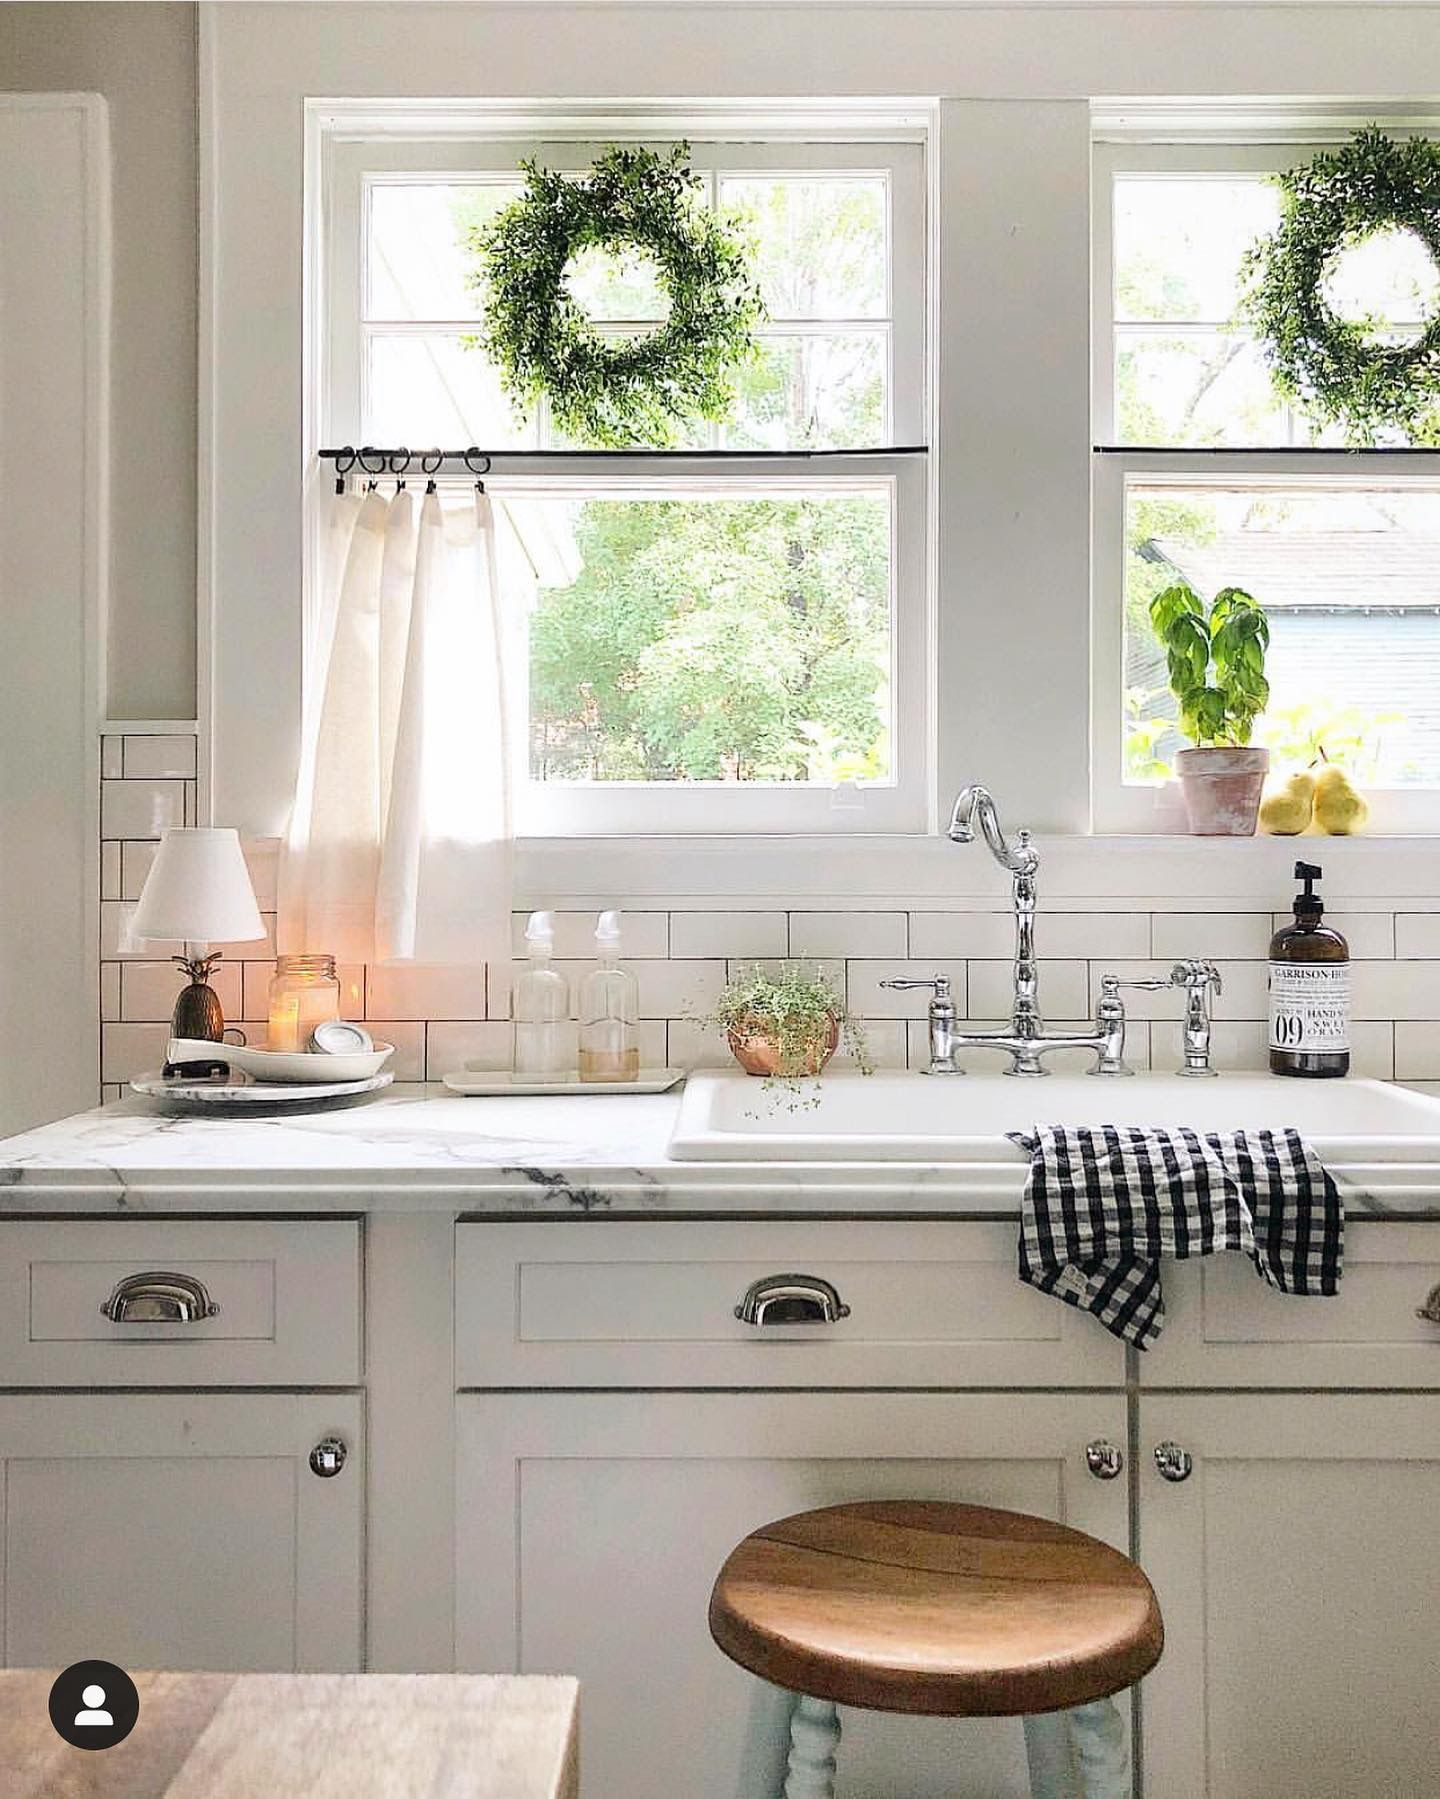 pin by arin o brien on dream house in 2020 country kitchen kitchen decor farmhouse kitchen on farmhouse kitchen valance ideas id=38227